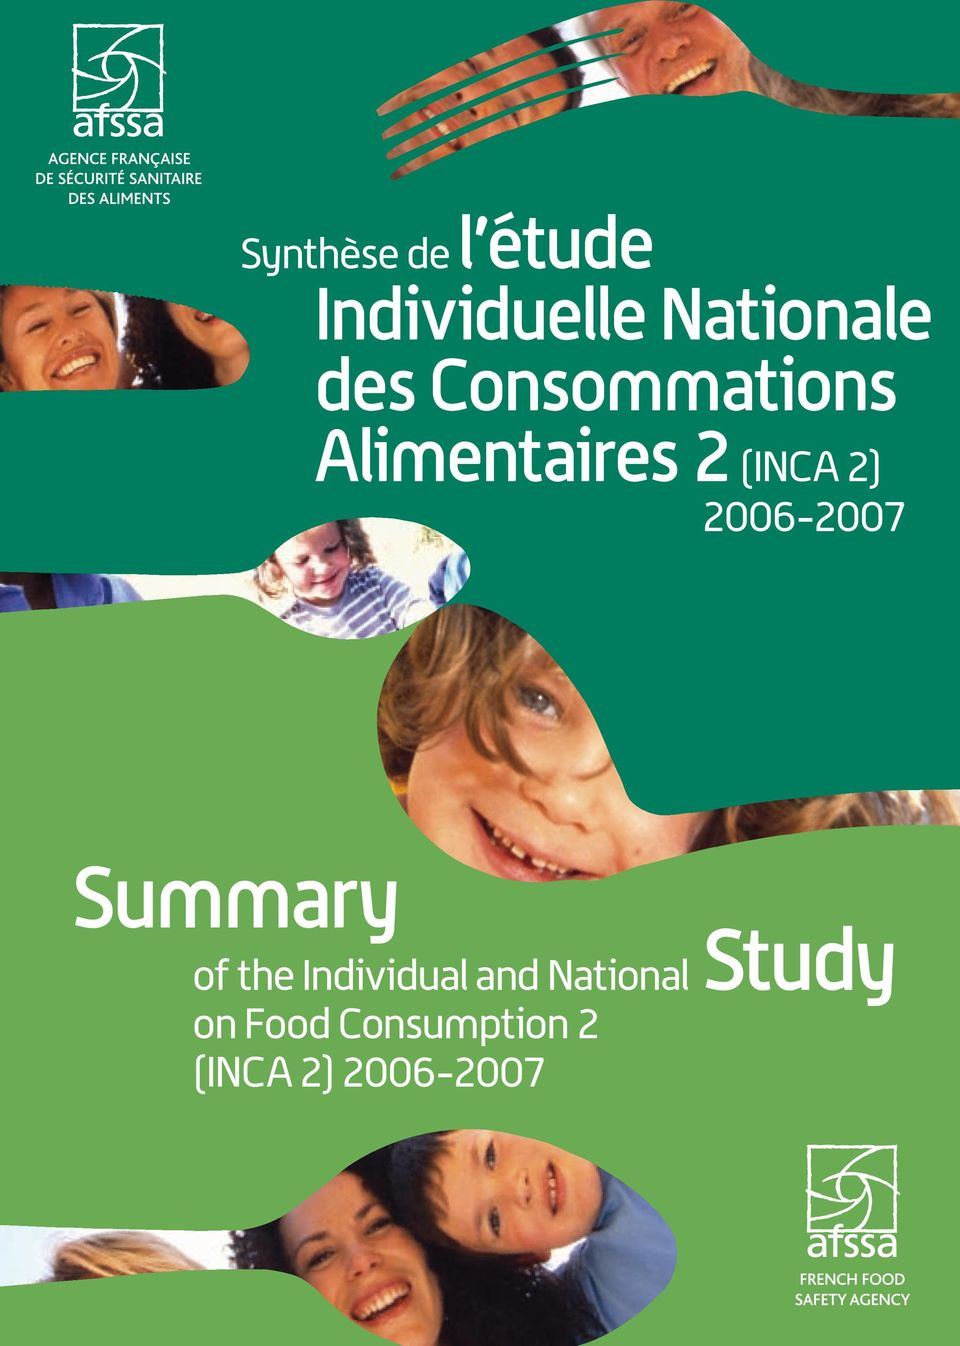 2006-2007 Summary of the Individual and